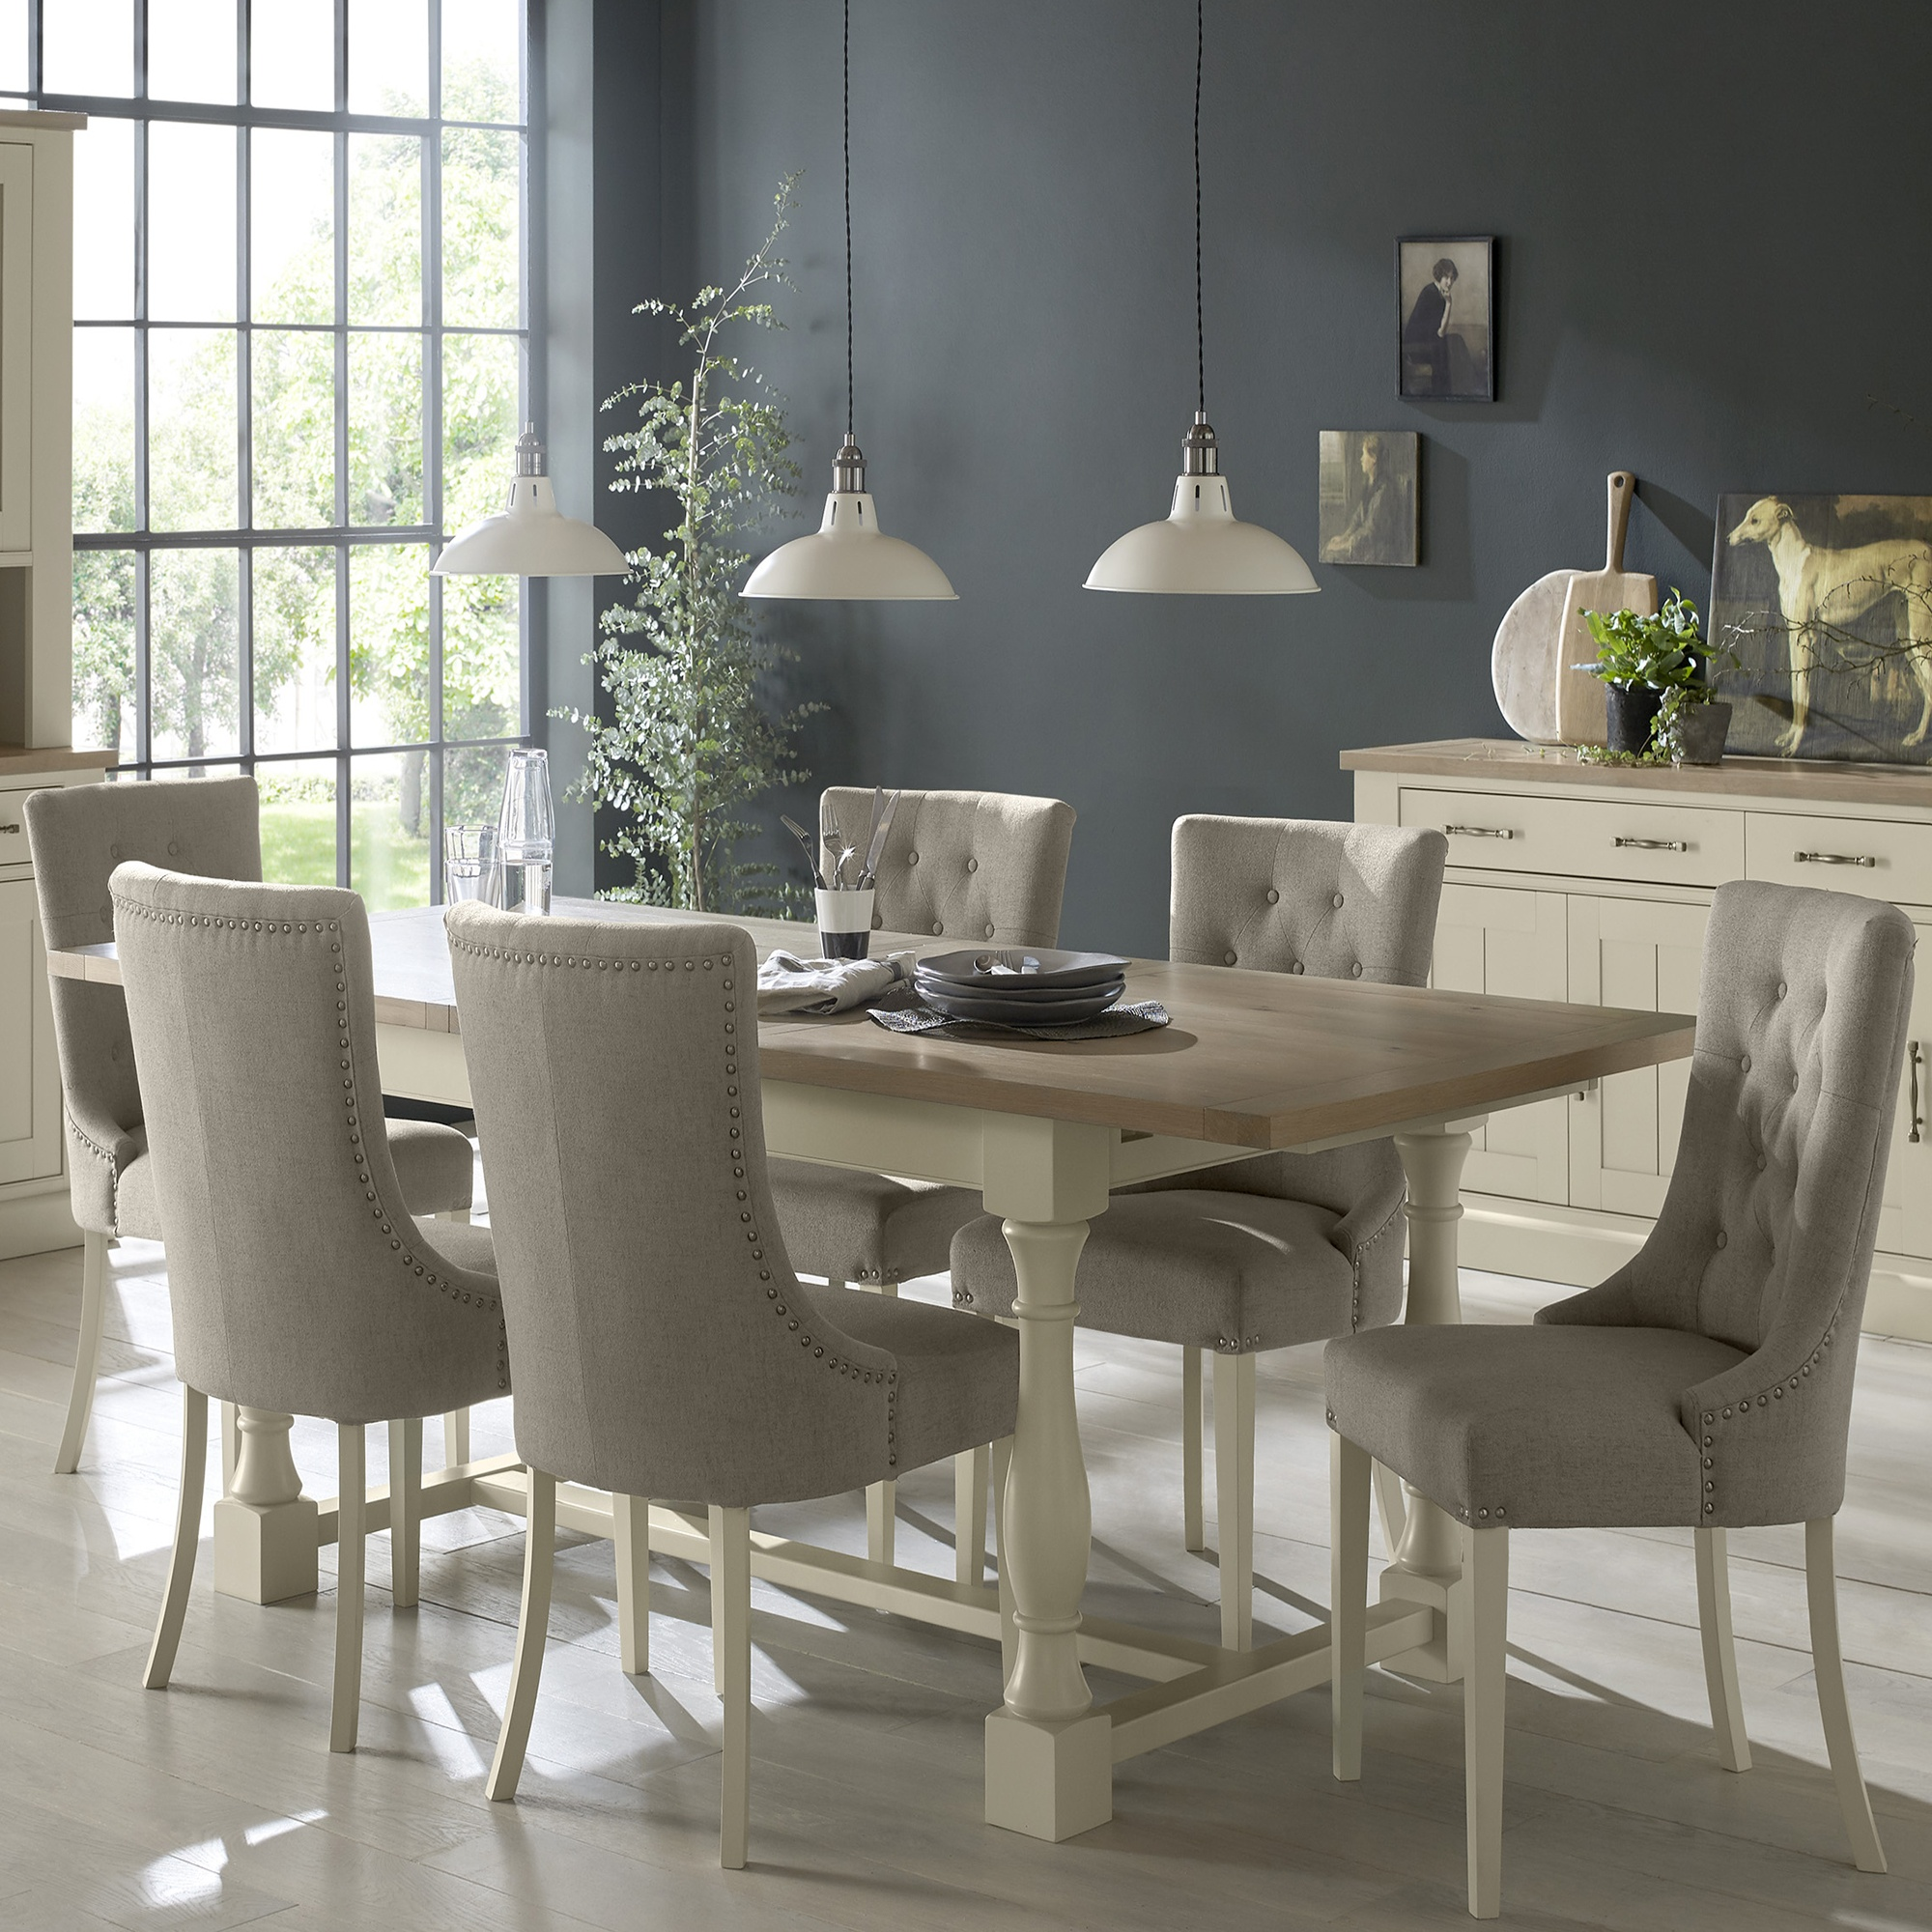 Cookes Collection Sloane Dining Table 4 Chairs And 2 Armchairs Dining Furniture